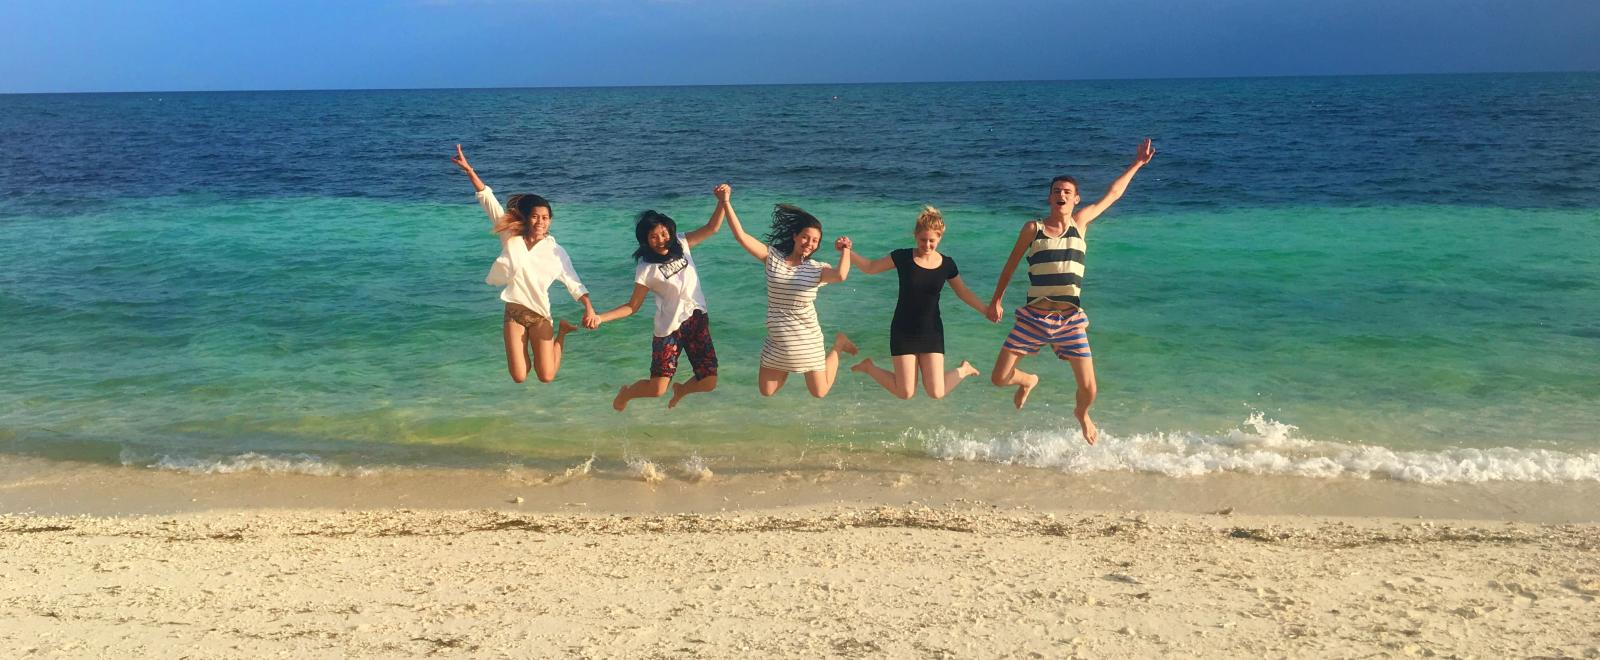 Projects Abroad volunteers having fun on a beach in the Philippines.